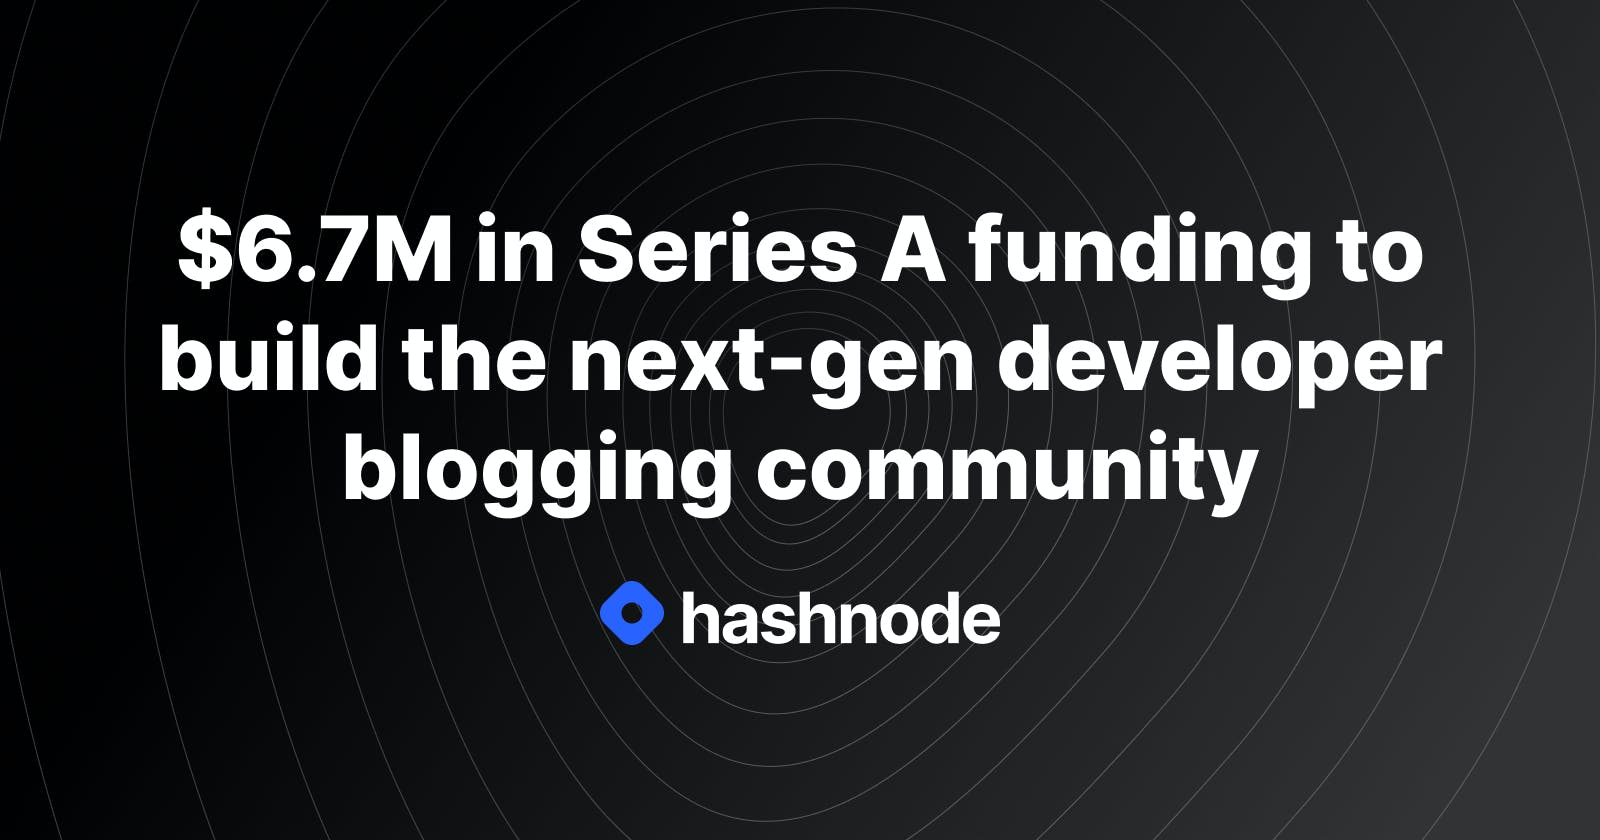 $6.7M in Series A funding to build the next-gen developer blogging community